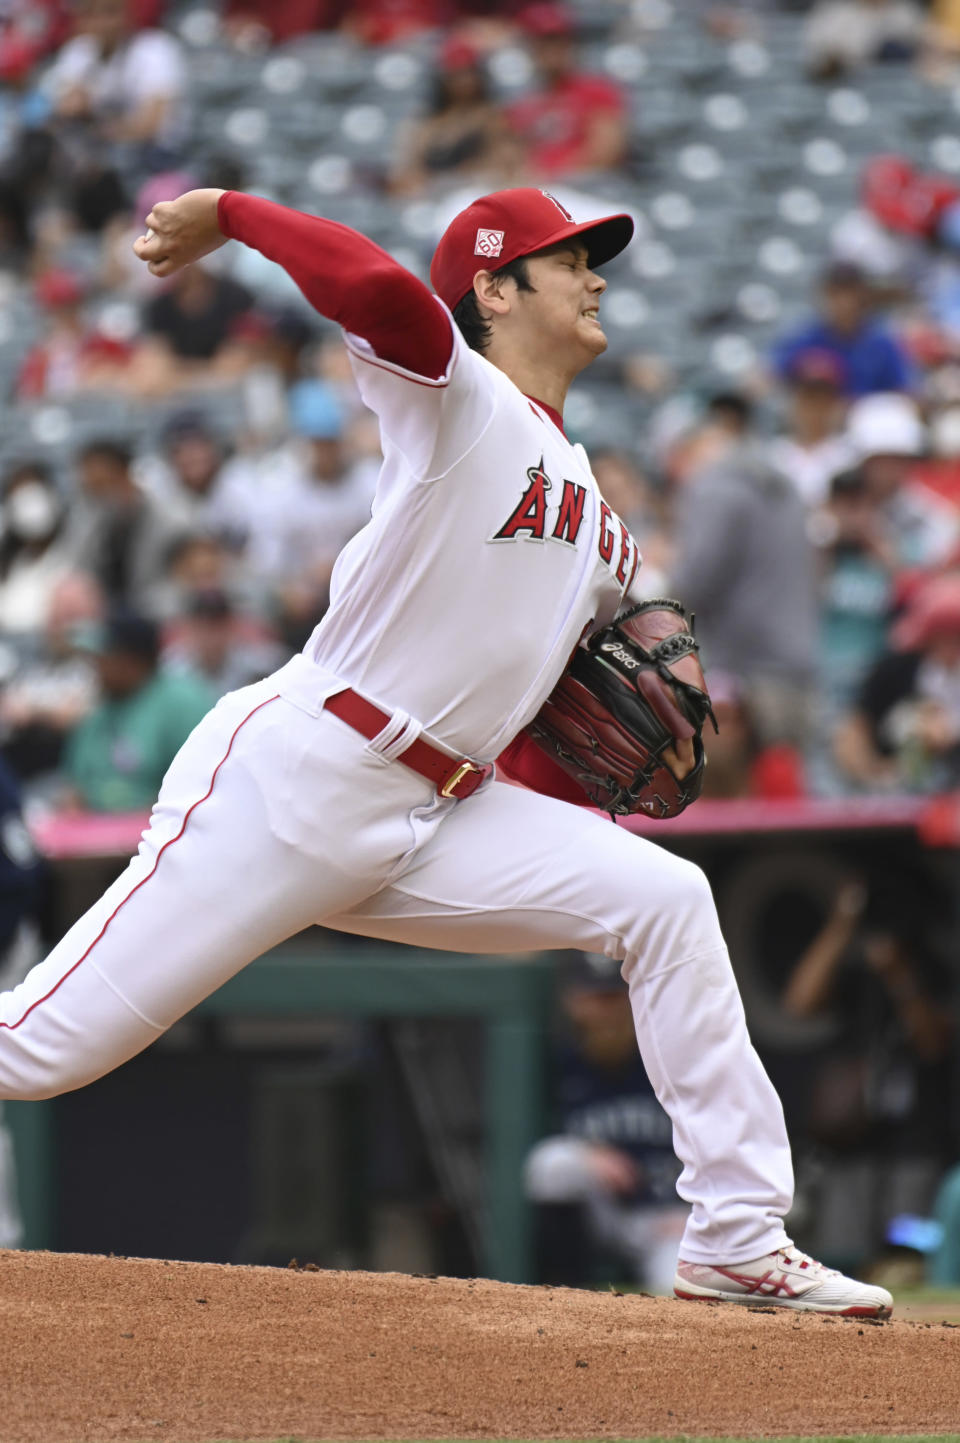 Los Angeles Angels pitcher Shohei Ohtani throws to home plate during the first inning of a baseball game against the Seattle Mariners, Sunday, Sept. 26, 2021, in Anaheim, Calif. (AP Photo/Michael Owen Baker)